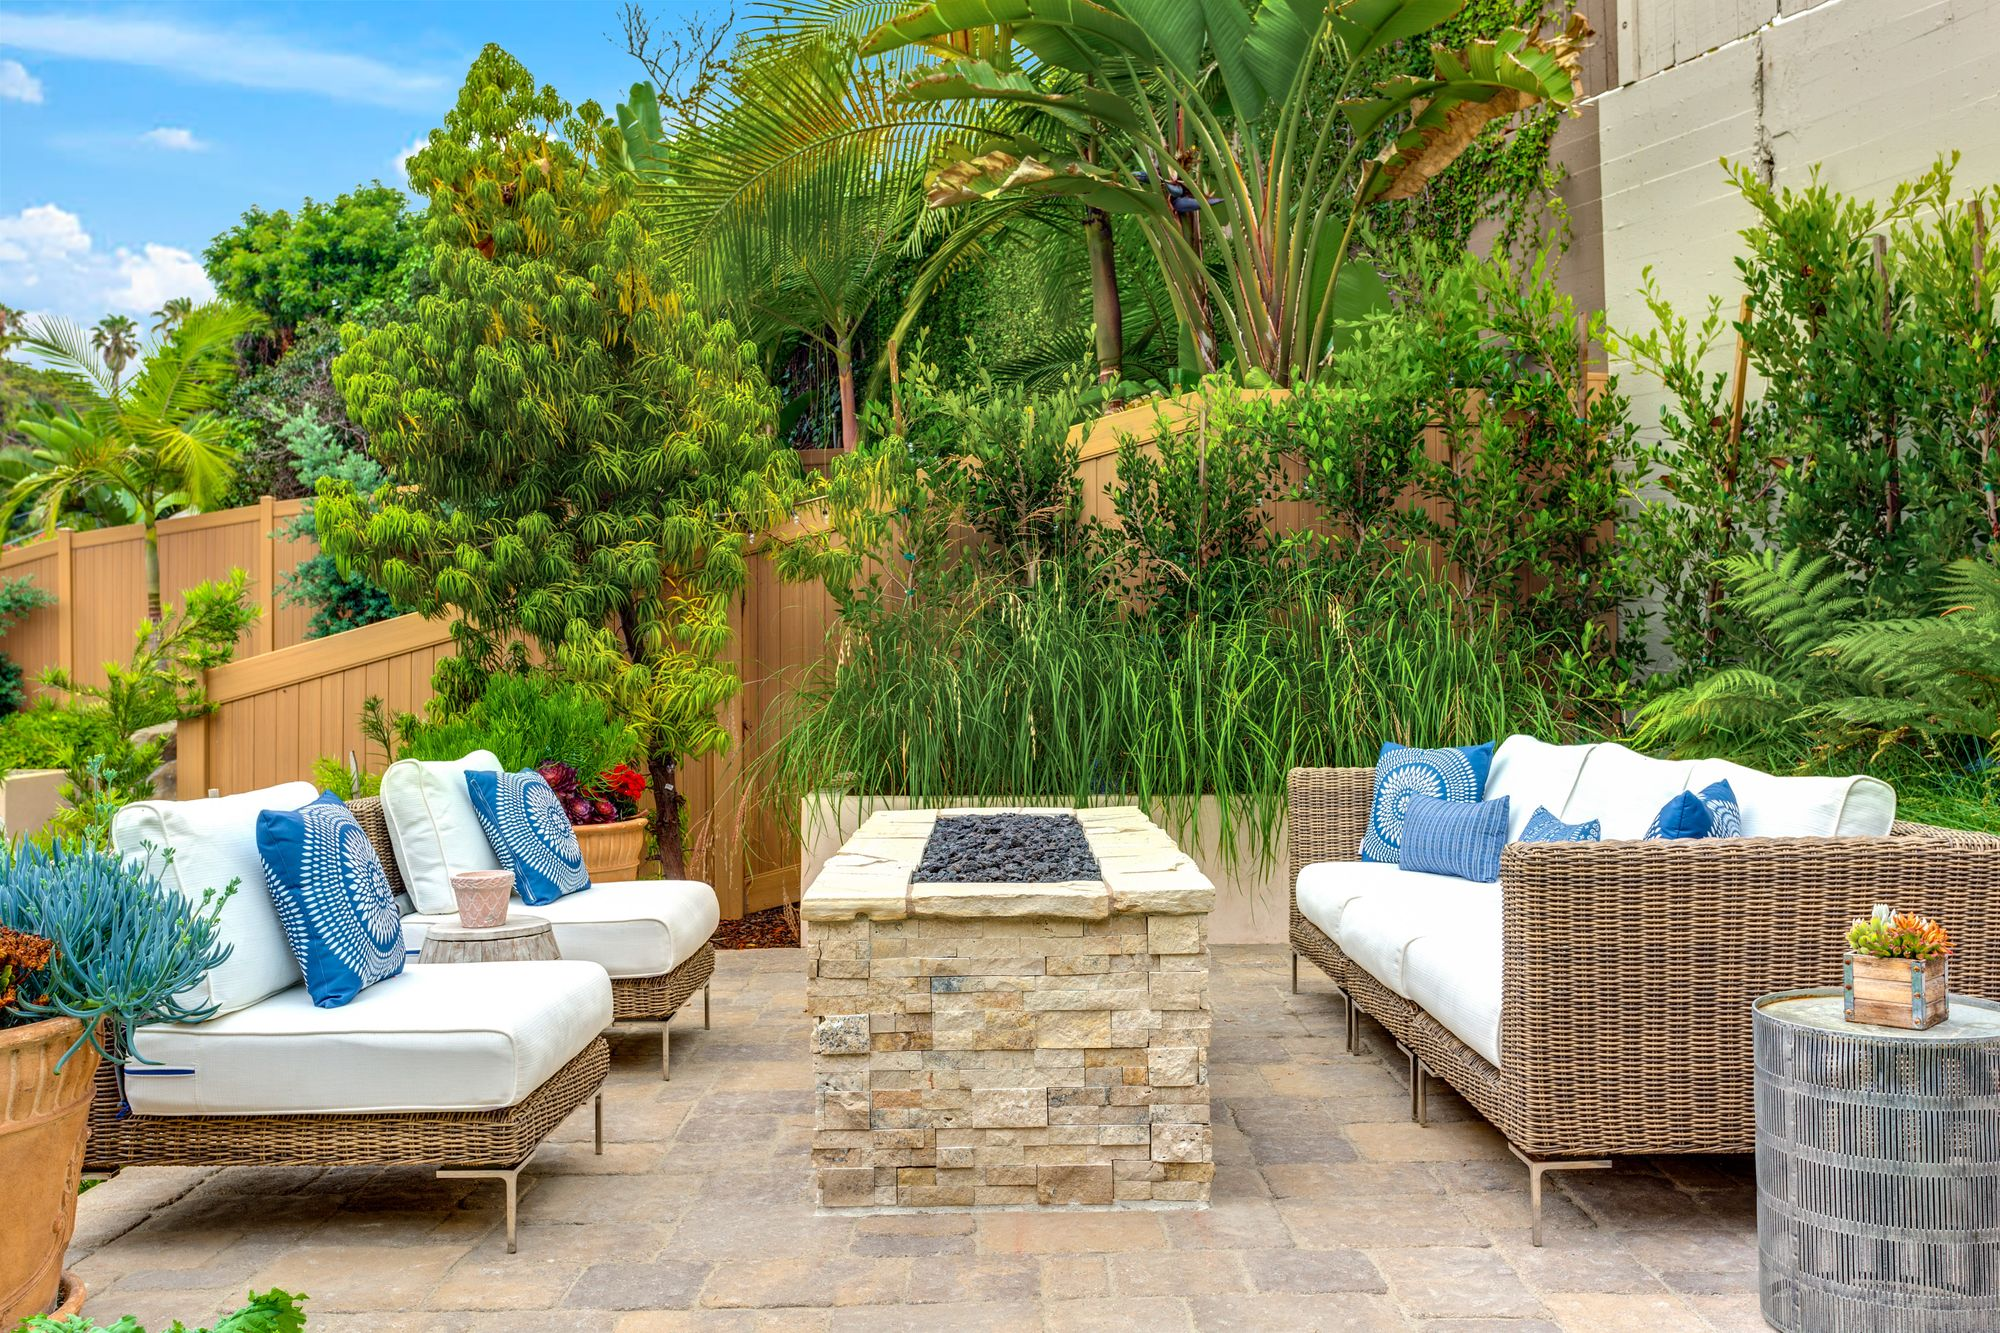 outdoor sofa next to a glass crystal fire pit